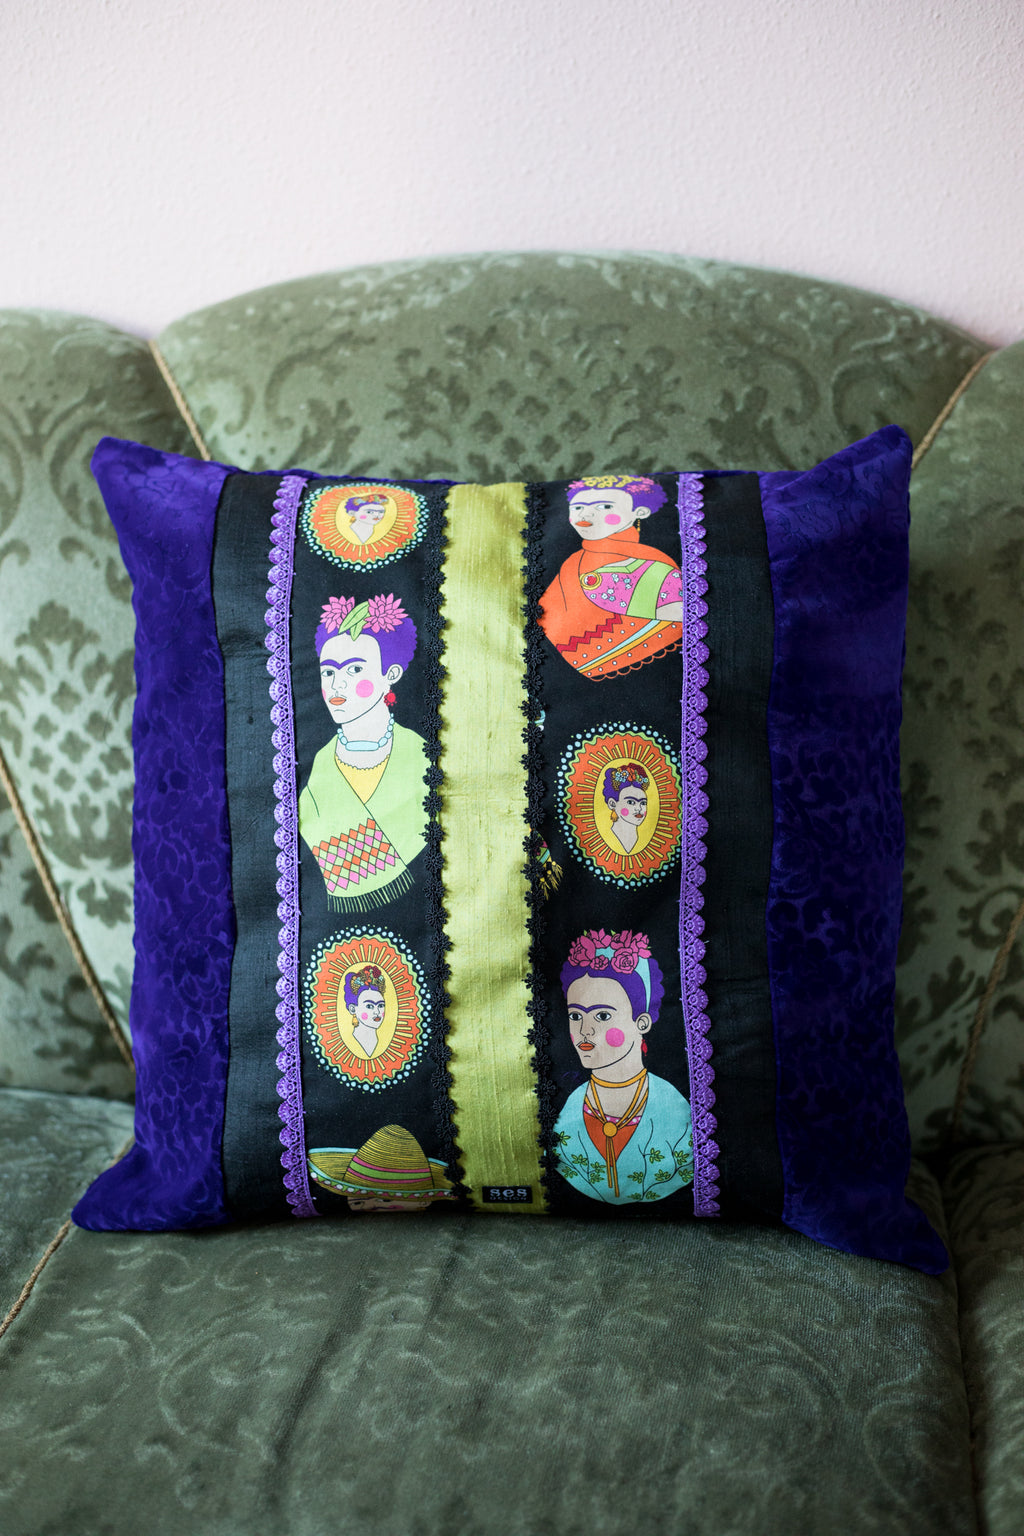 Lovely Frida cushion